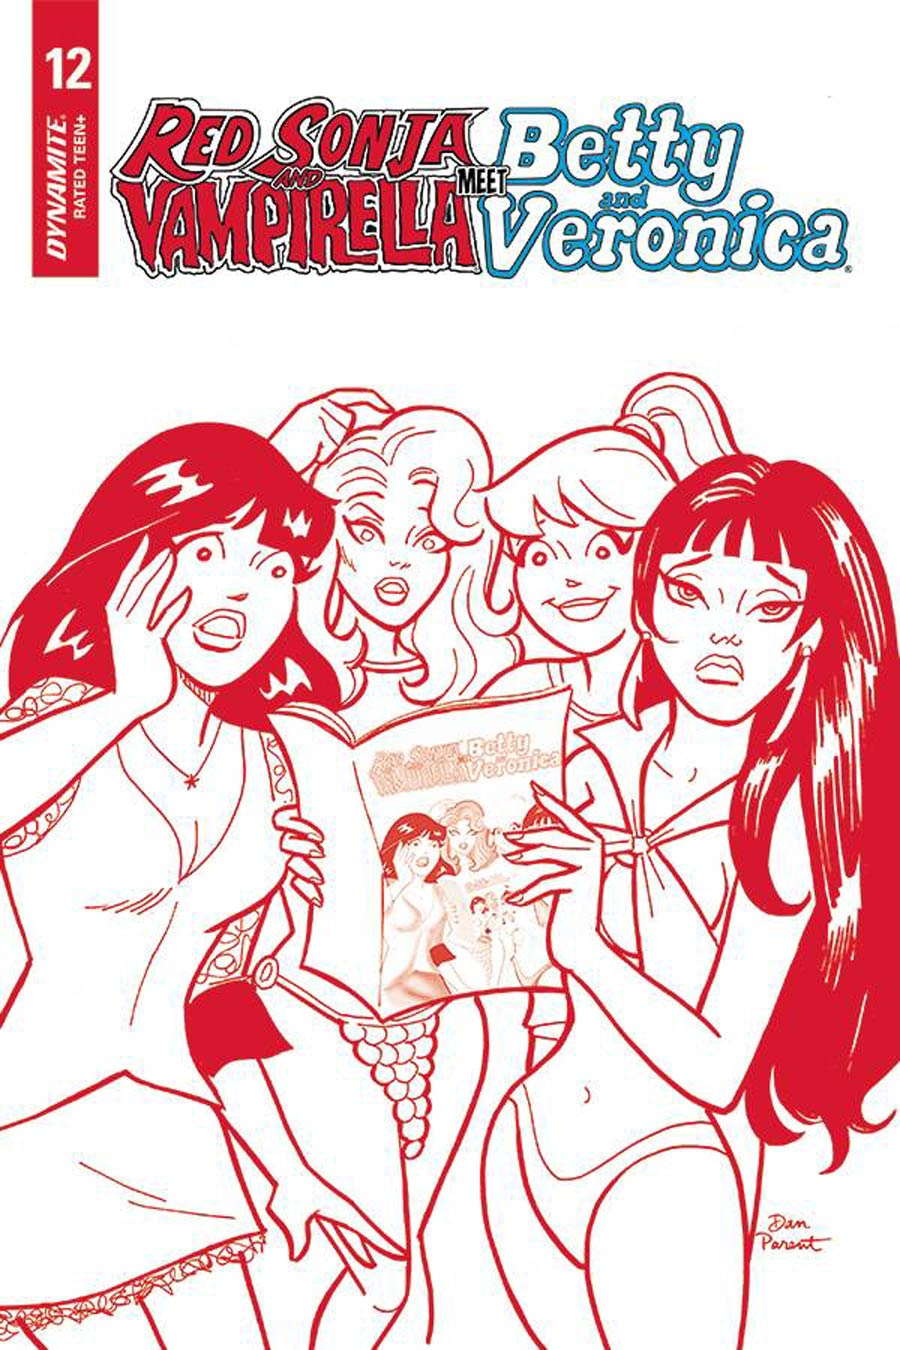 Red Sonja And Vampirella Meet Betty And Veronica #12 Cover H Incentive Dan Parent Red Tint Cover